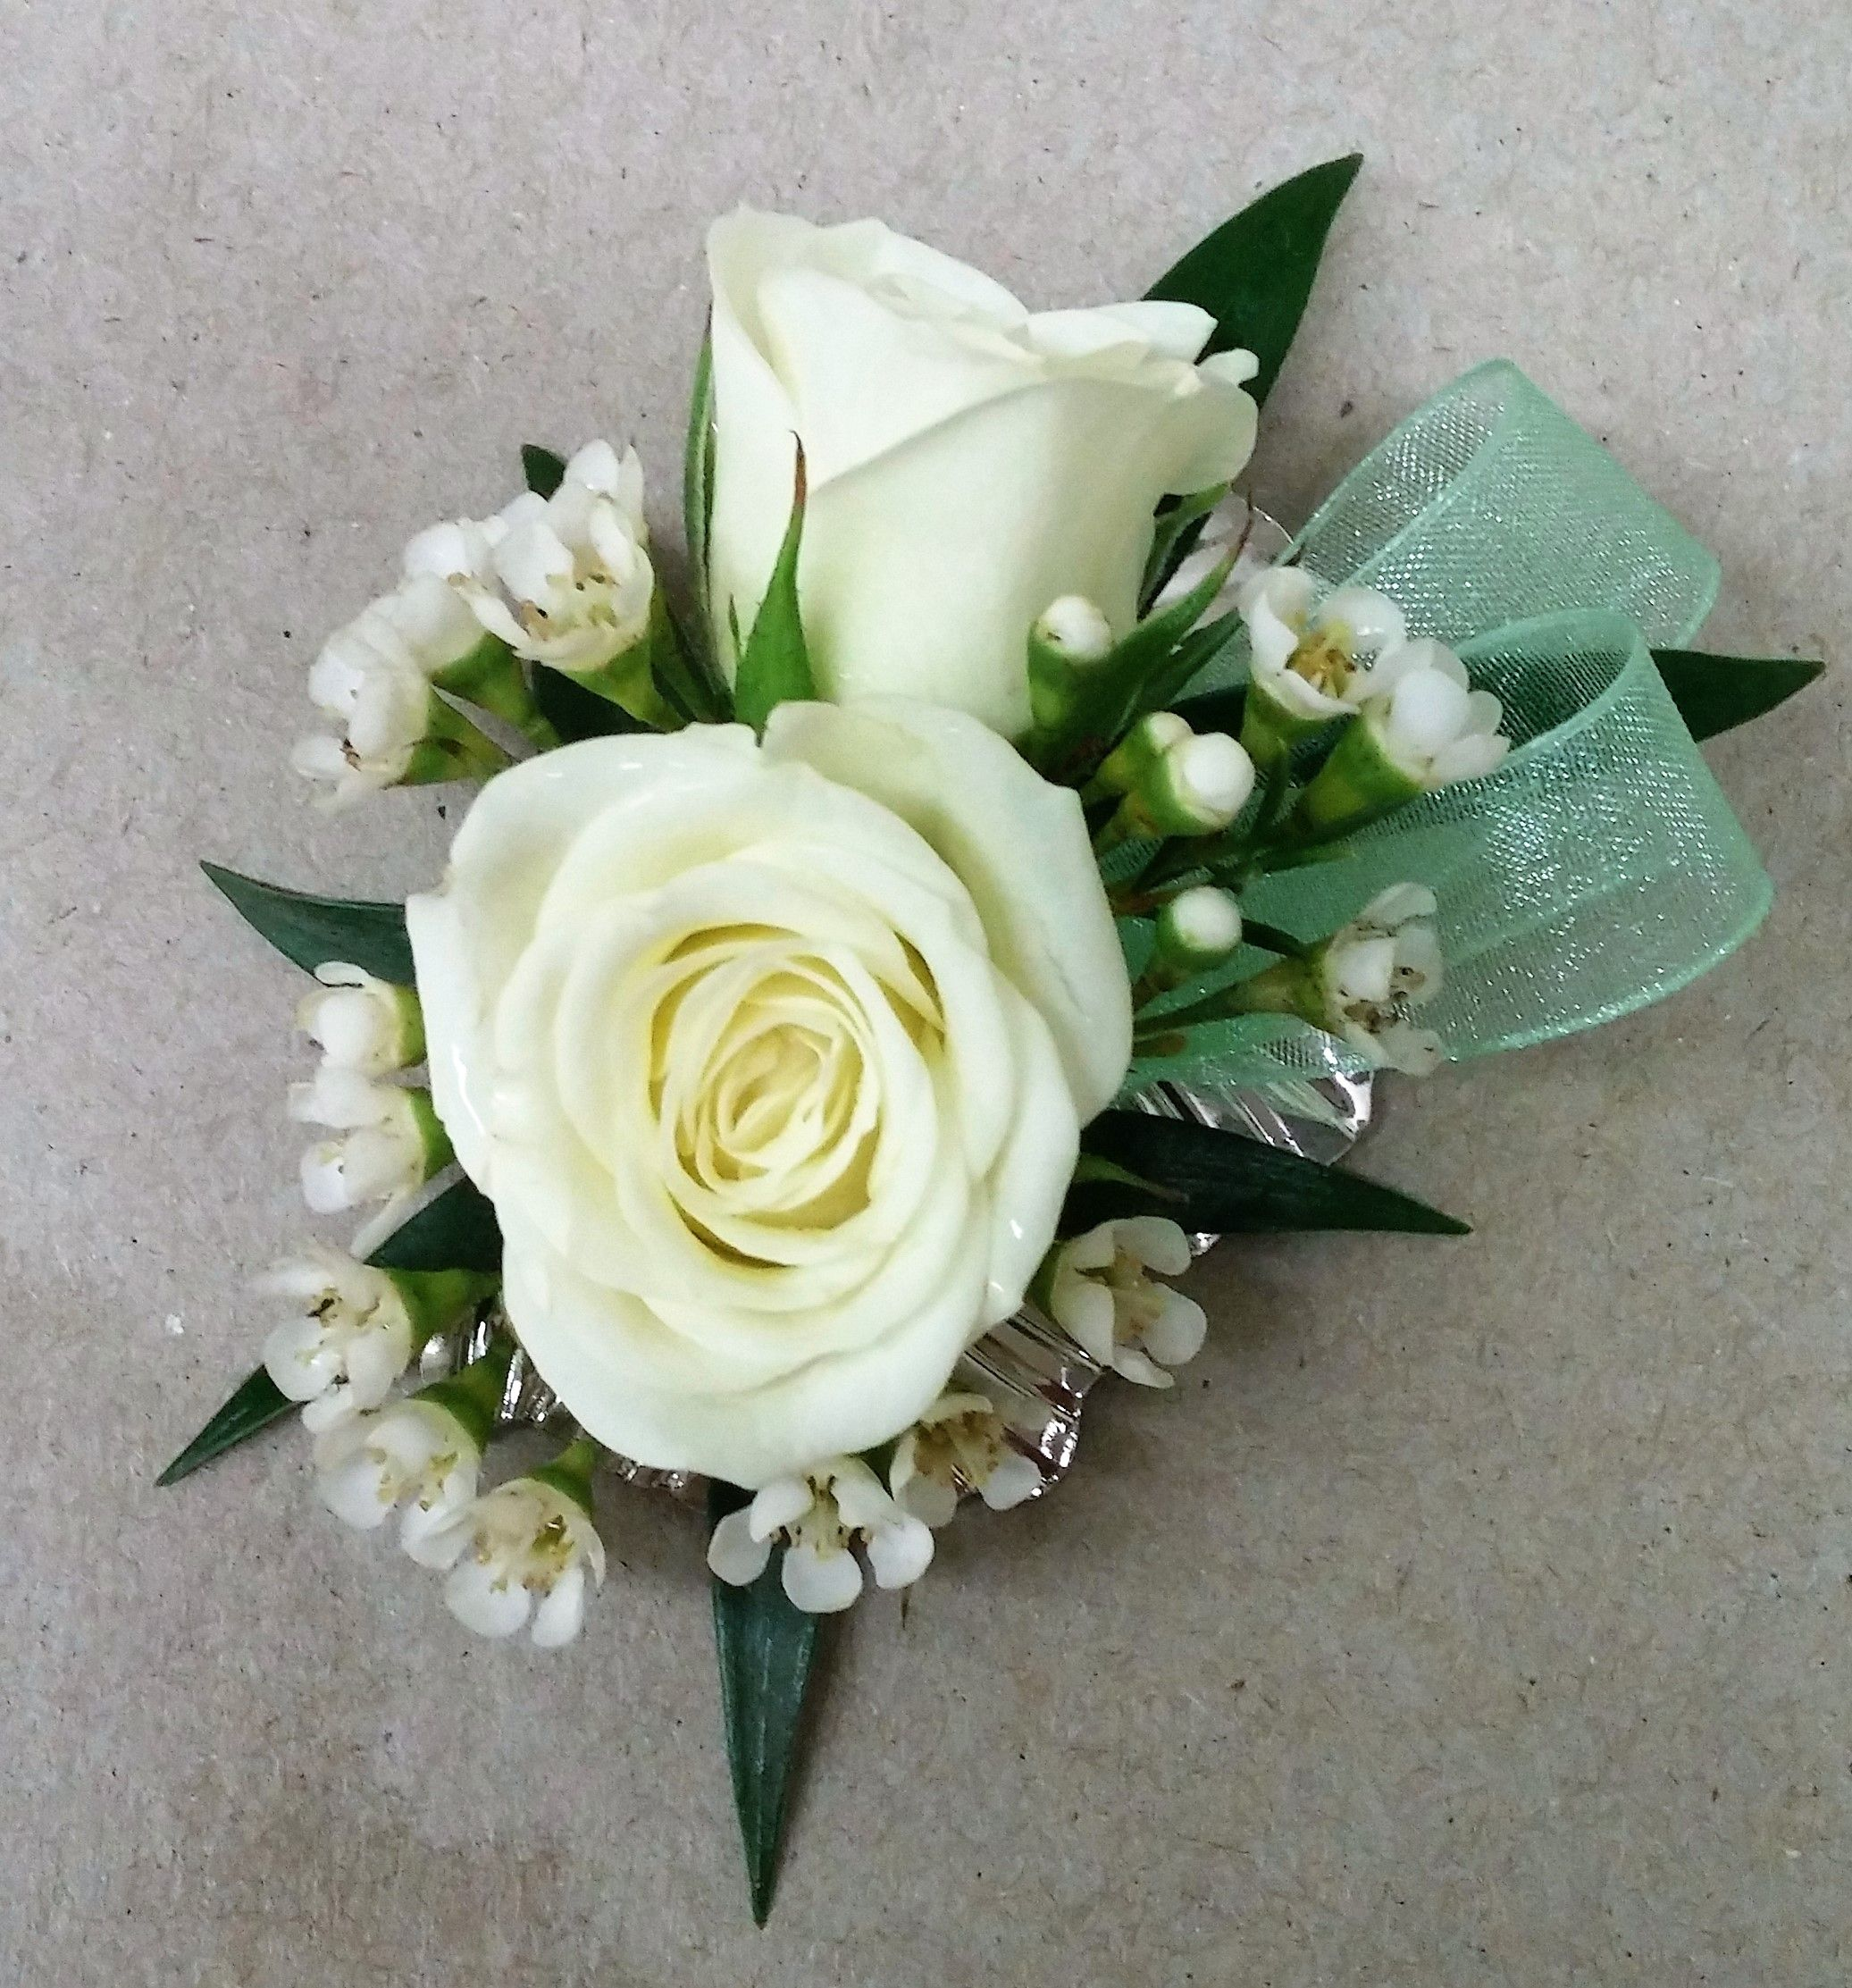 rose boutonniere on silver magnet backing great for prom wedeliverthewow - Garden Rose Boutonniere